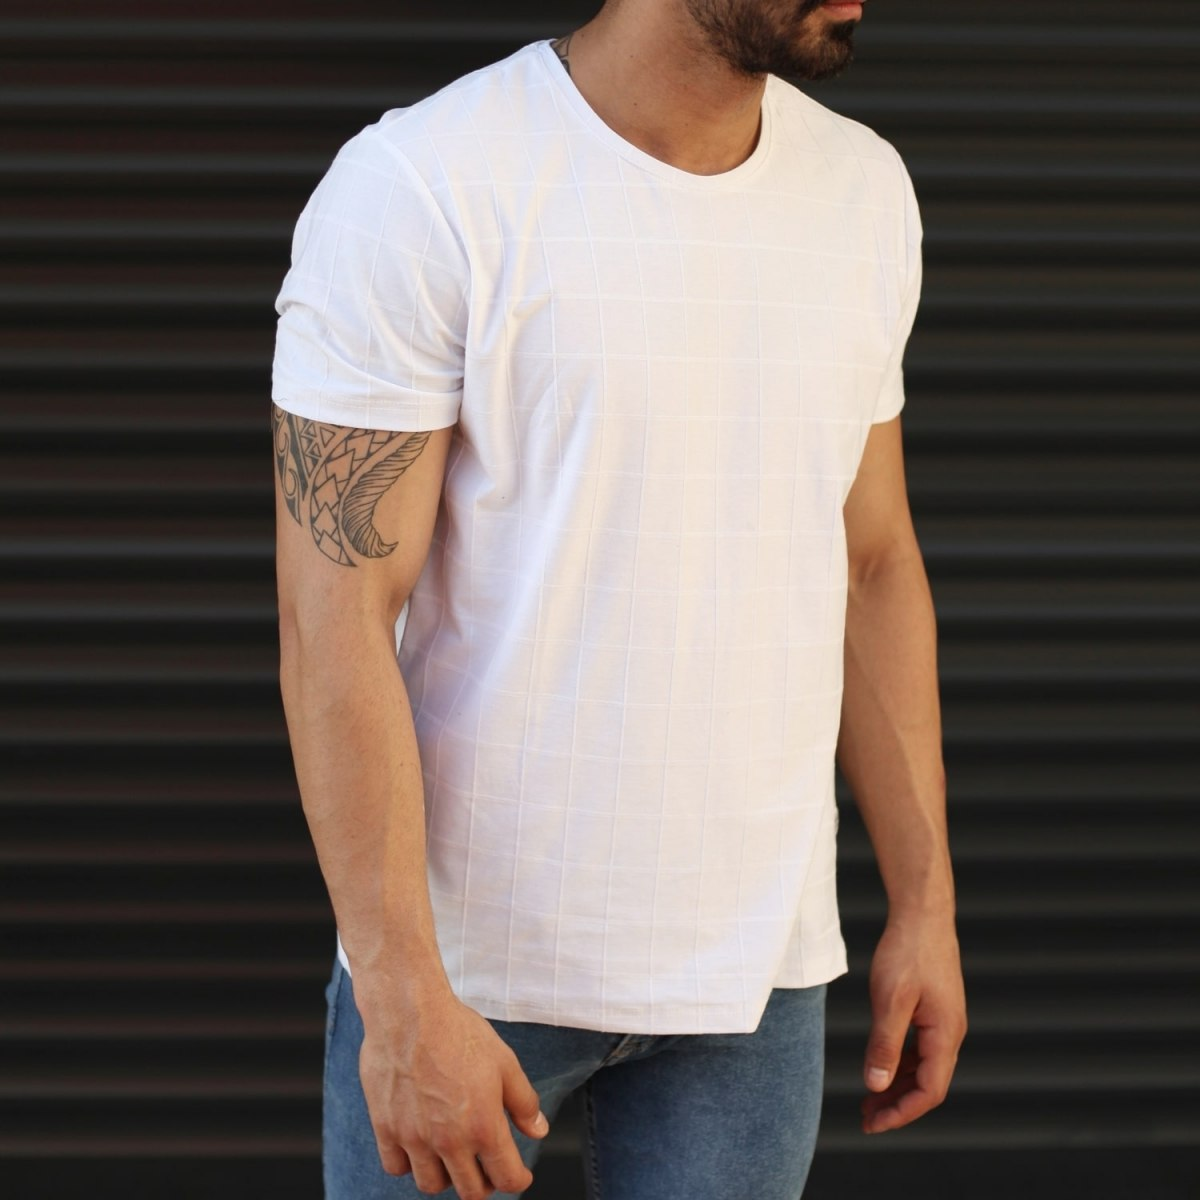 Men's New Look Slim Fit Basic T-Shirt In White Mv Premium Brand - 2